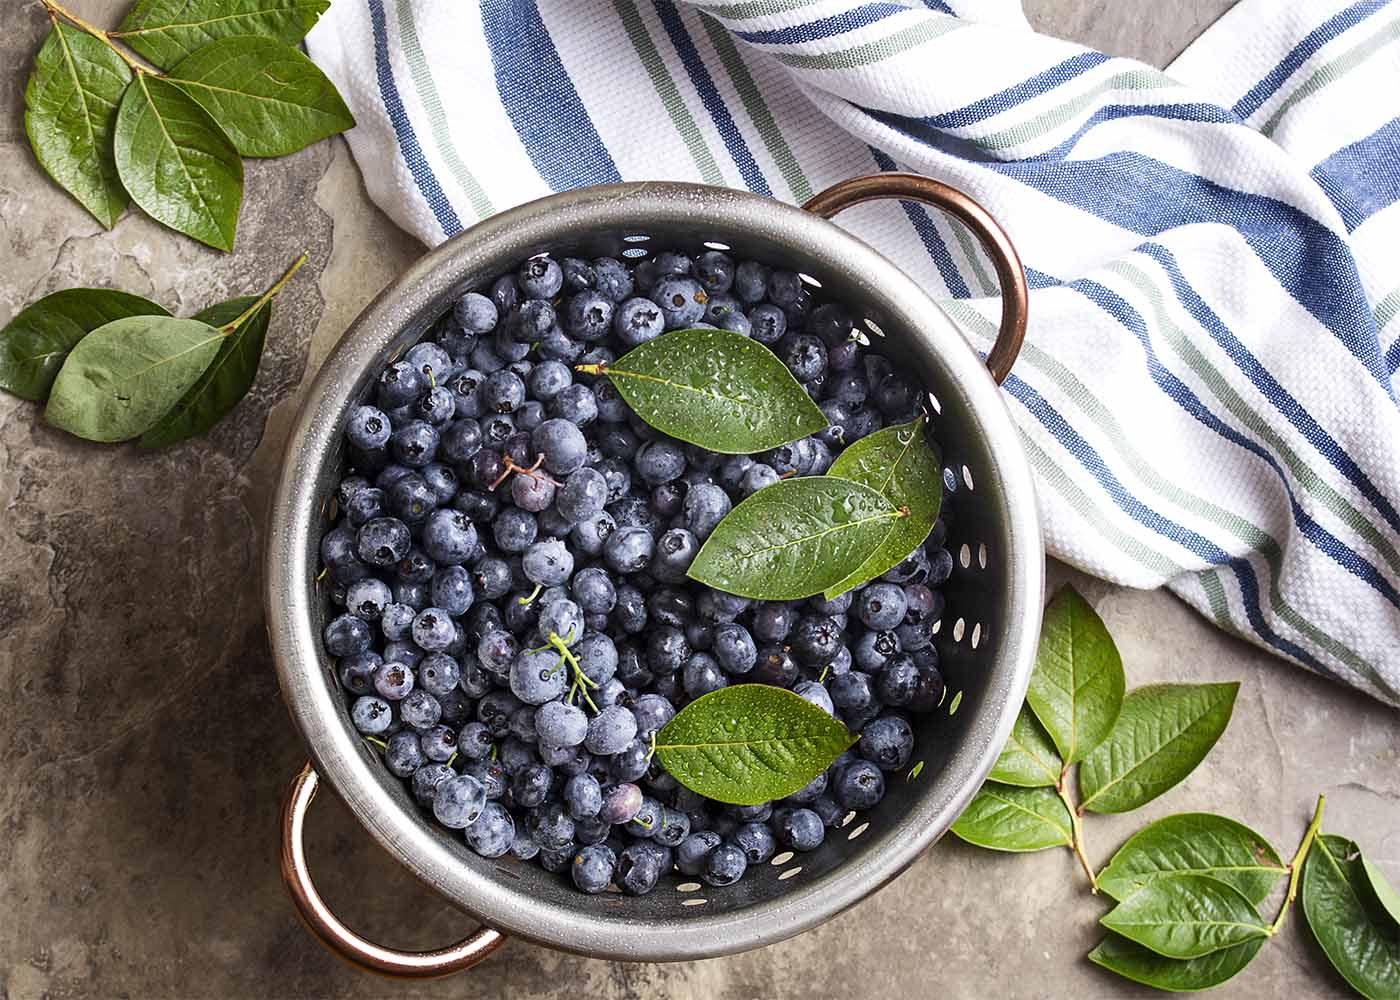 Freshly washed blueberries in a colander with blueberry leaves scattered about.